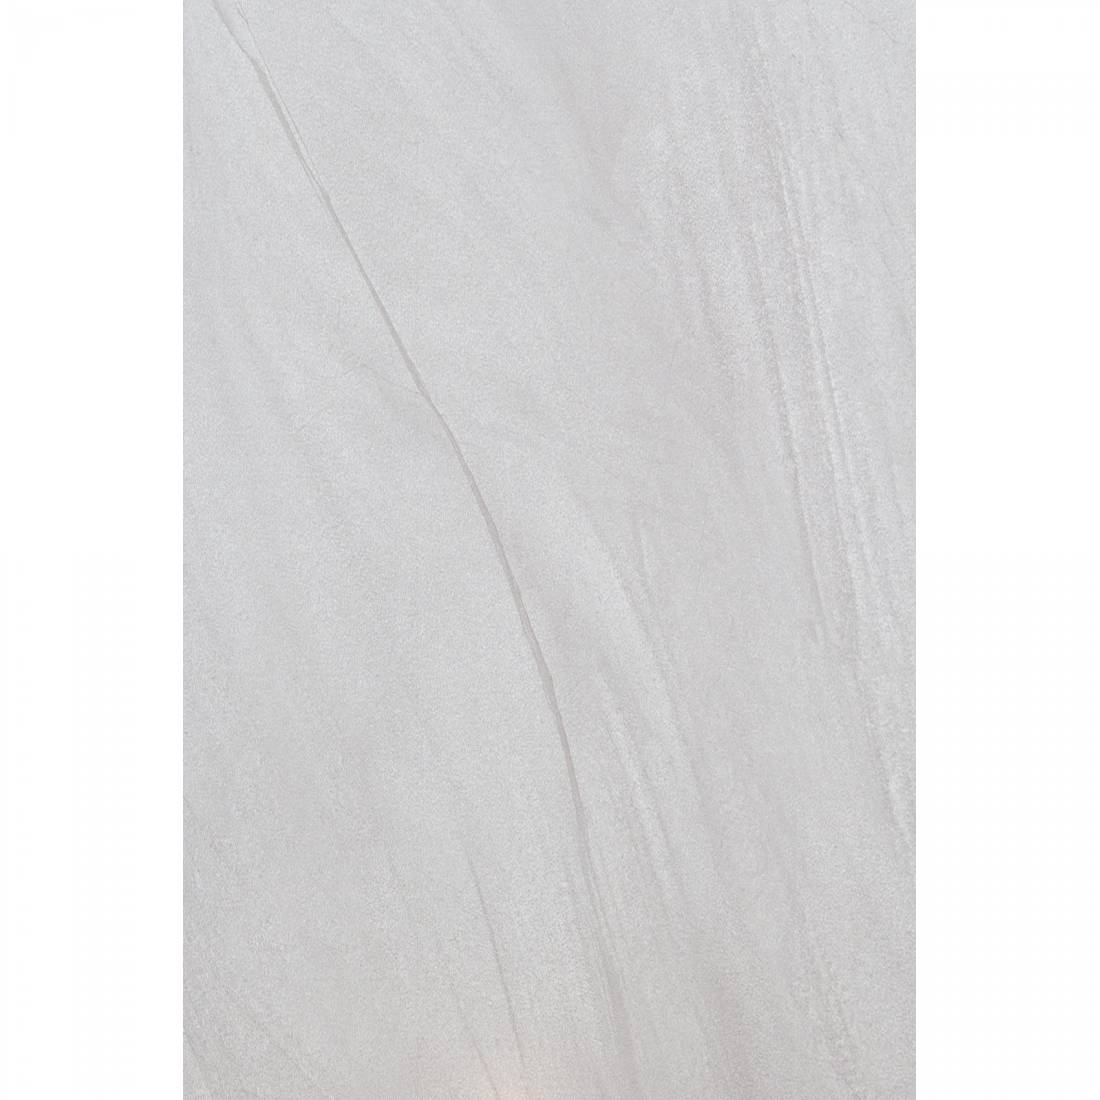 Sand Dune 30x45 Light Grey 1